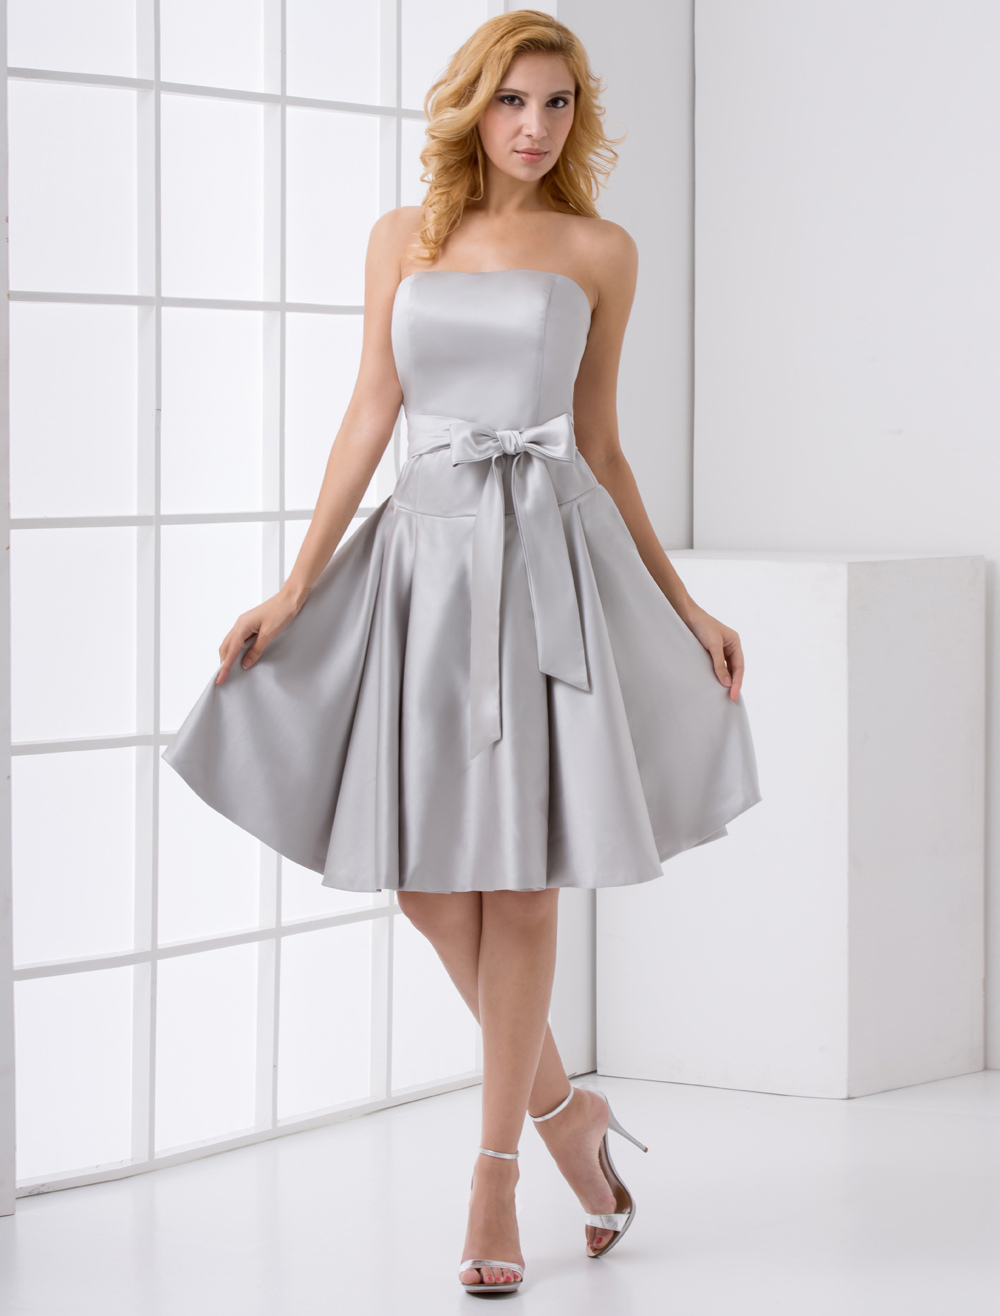 A-line Silver Satin Bow Knee-Length Bridesmaid Dress For Wedding